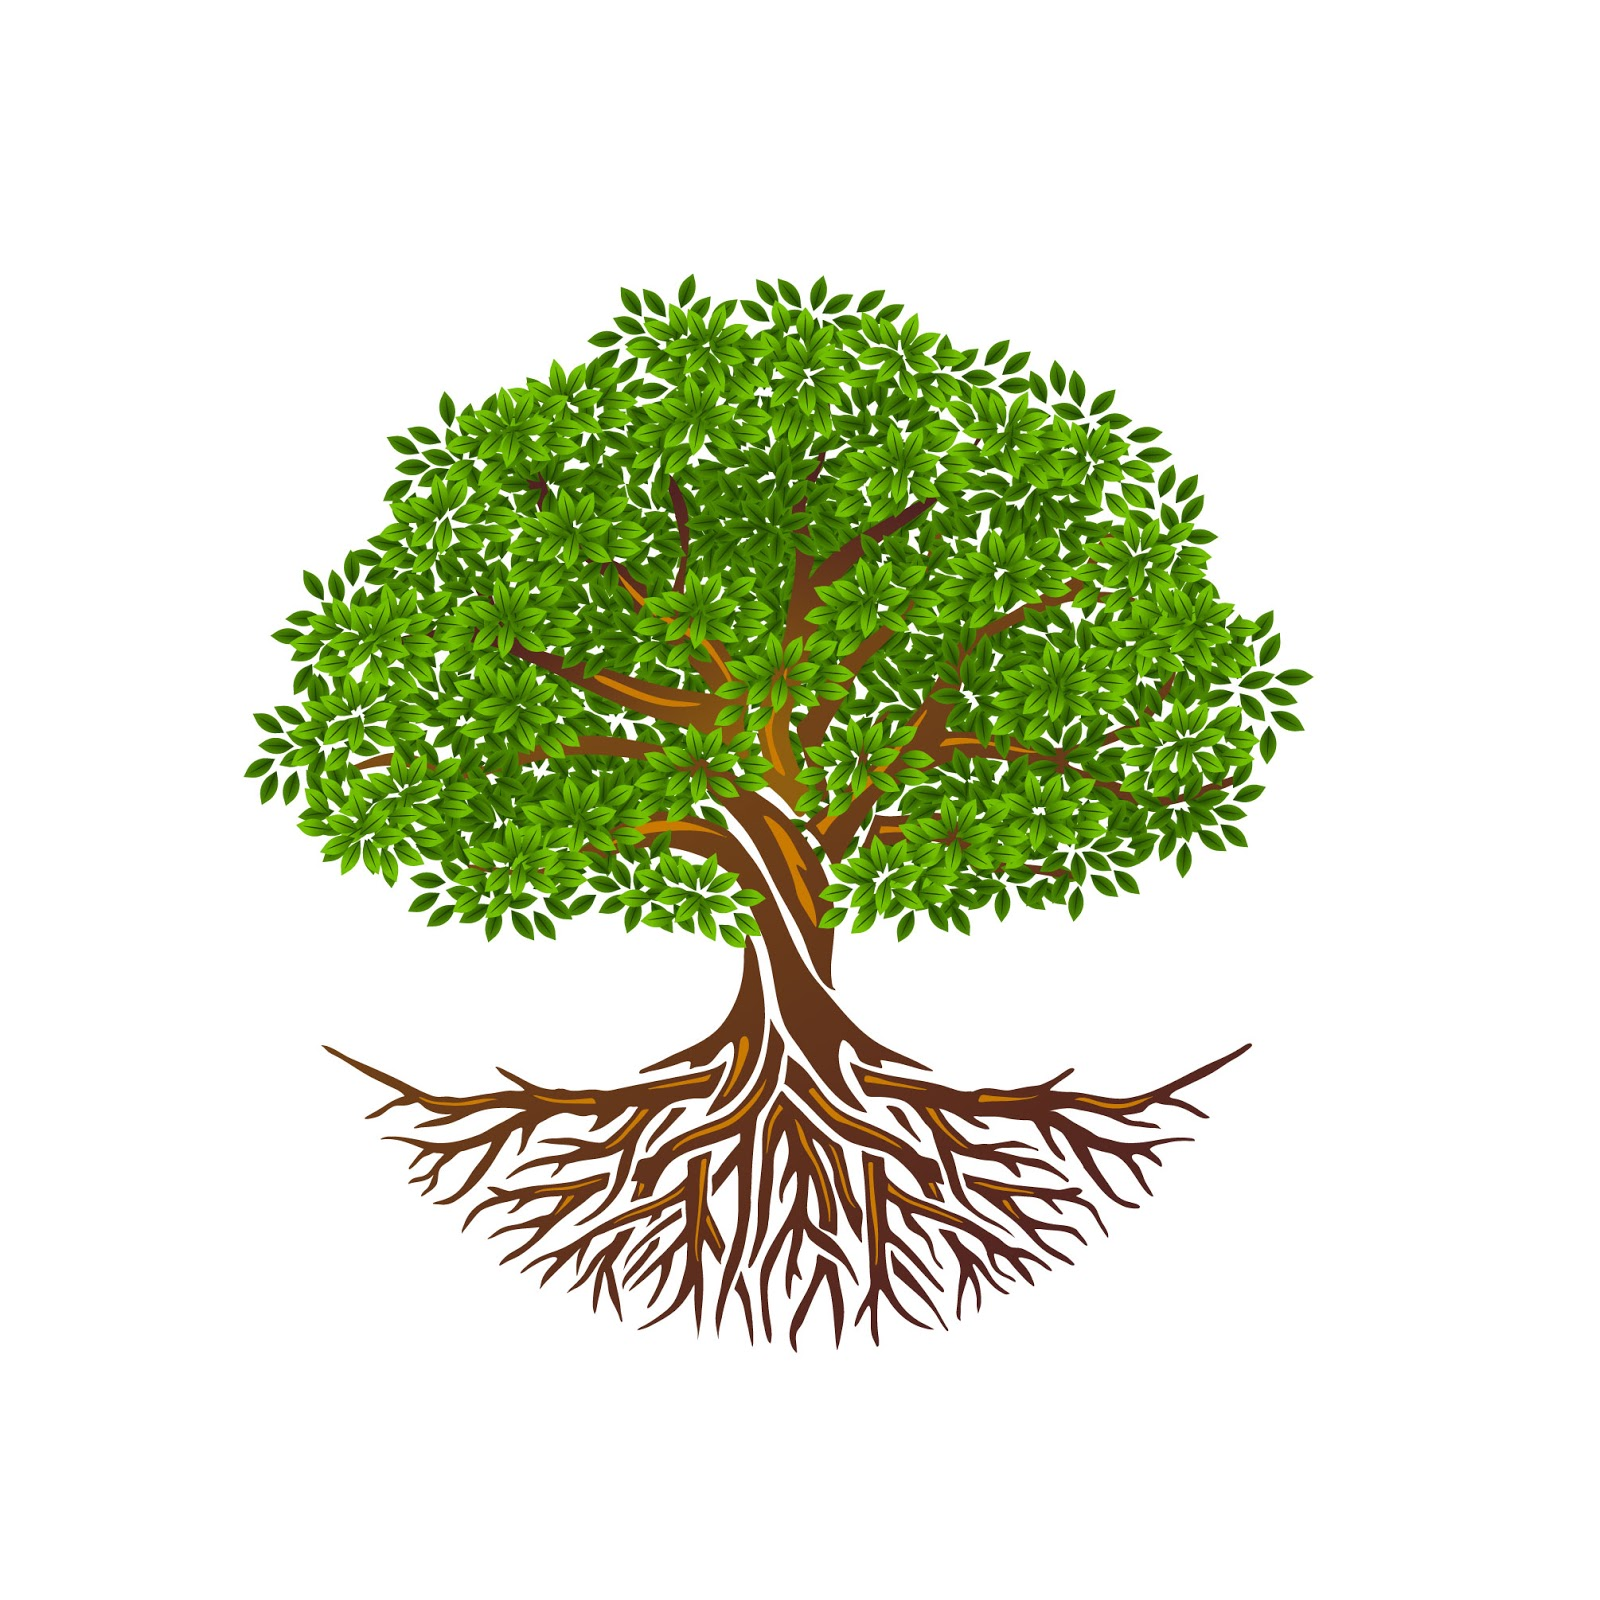 Tree Life Tree Roots Vector Isolated Tree Free Download Vector CDR, AI, EPS and PNG Formats